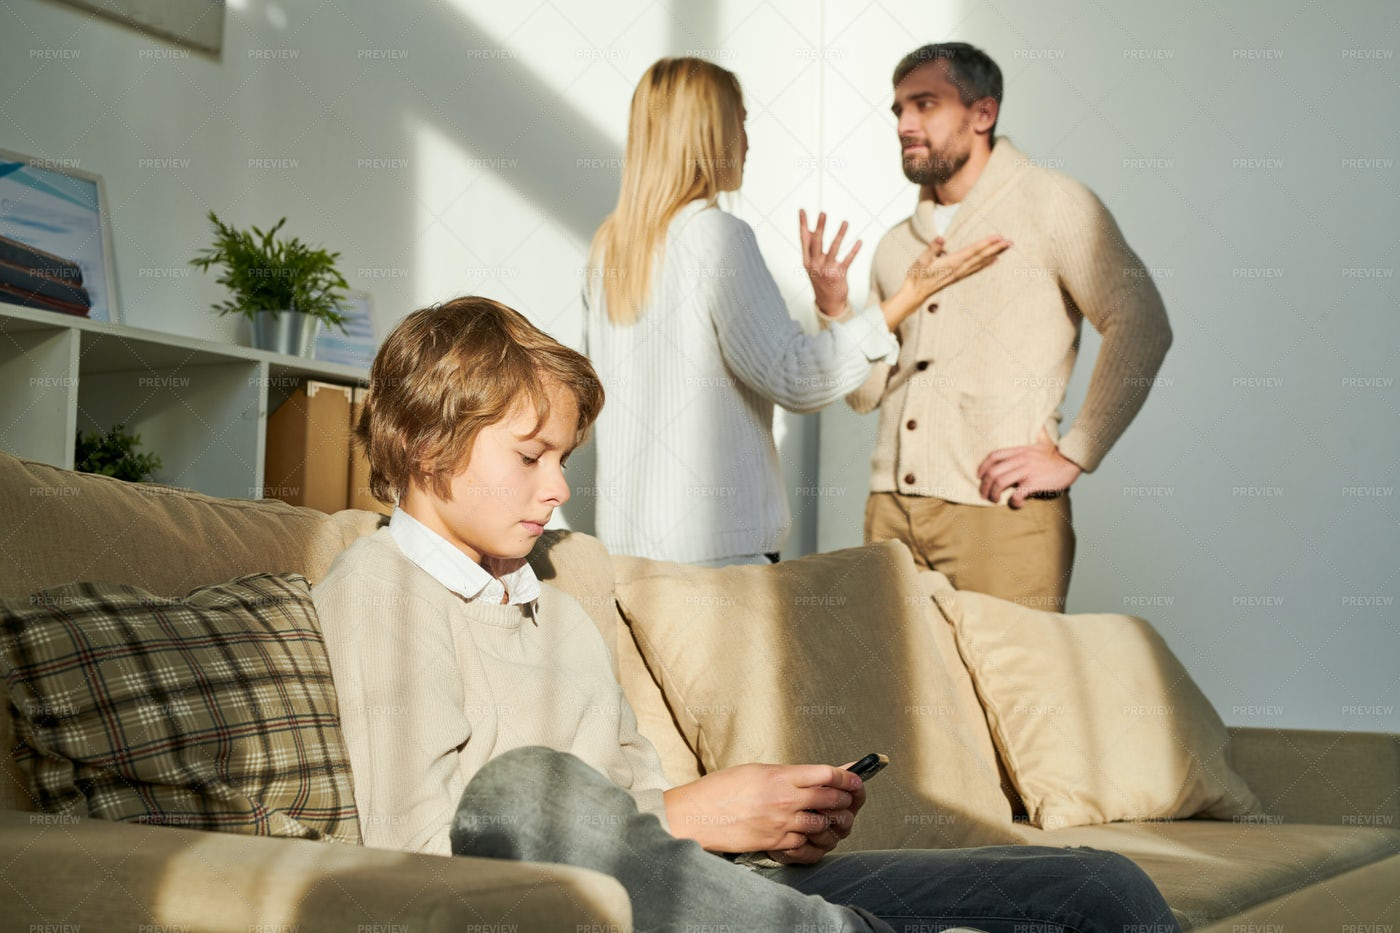 Boy Being Closed Off While Parents...: Stock Photos